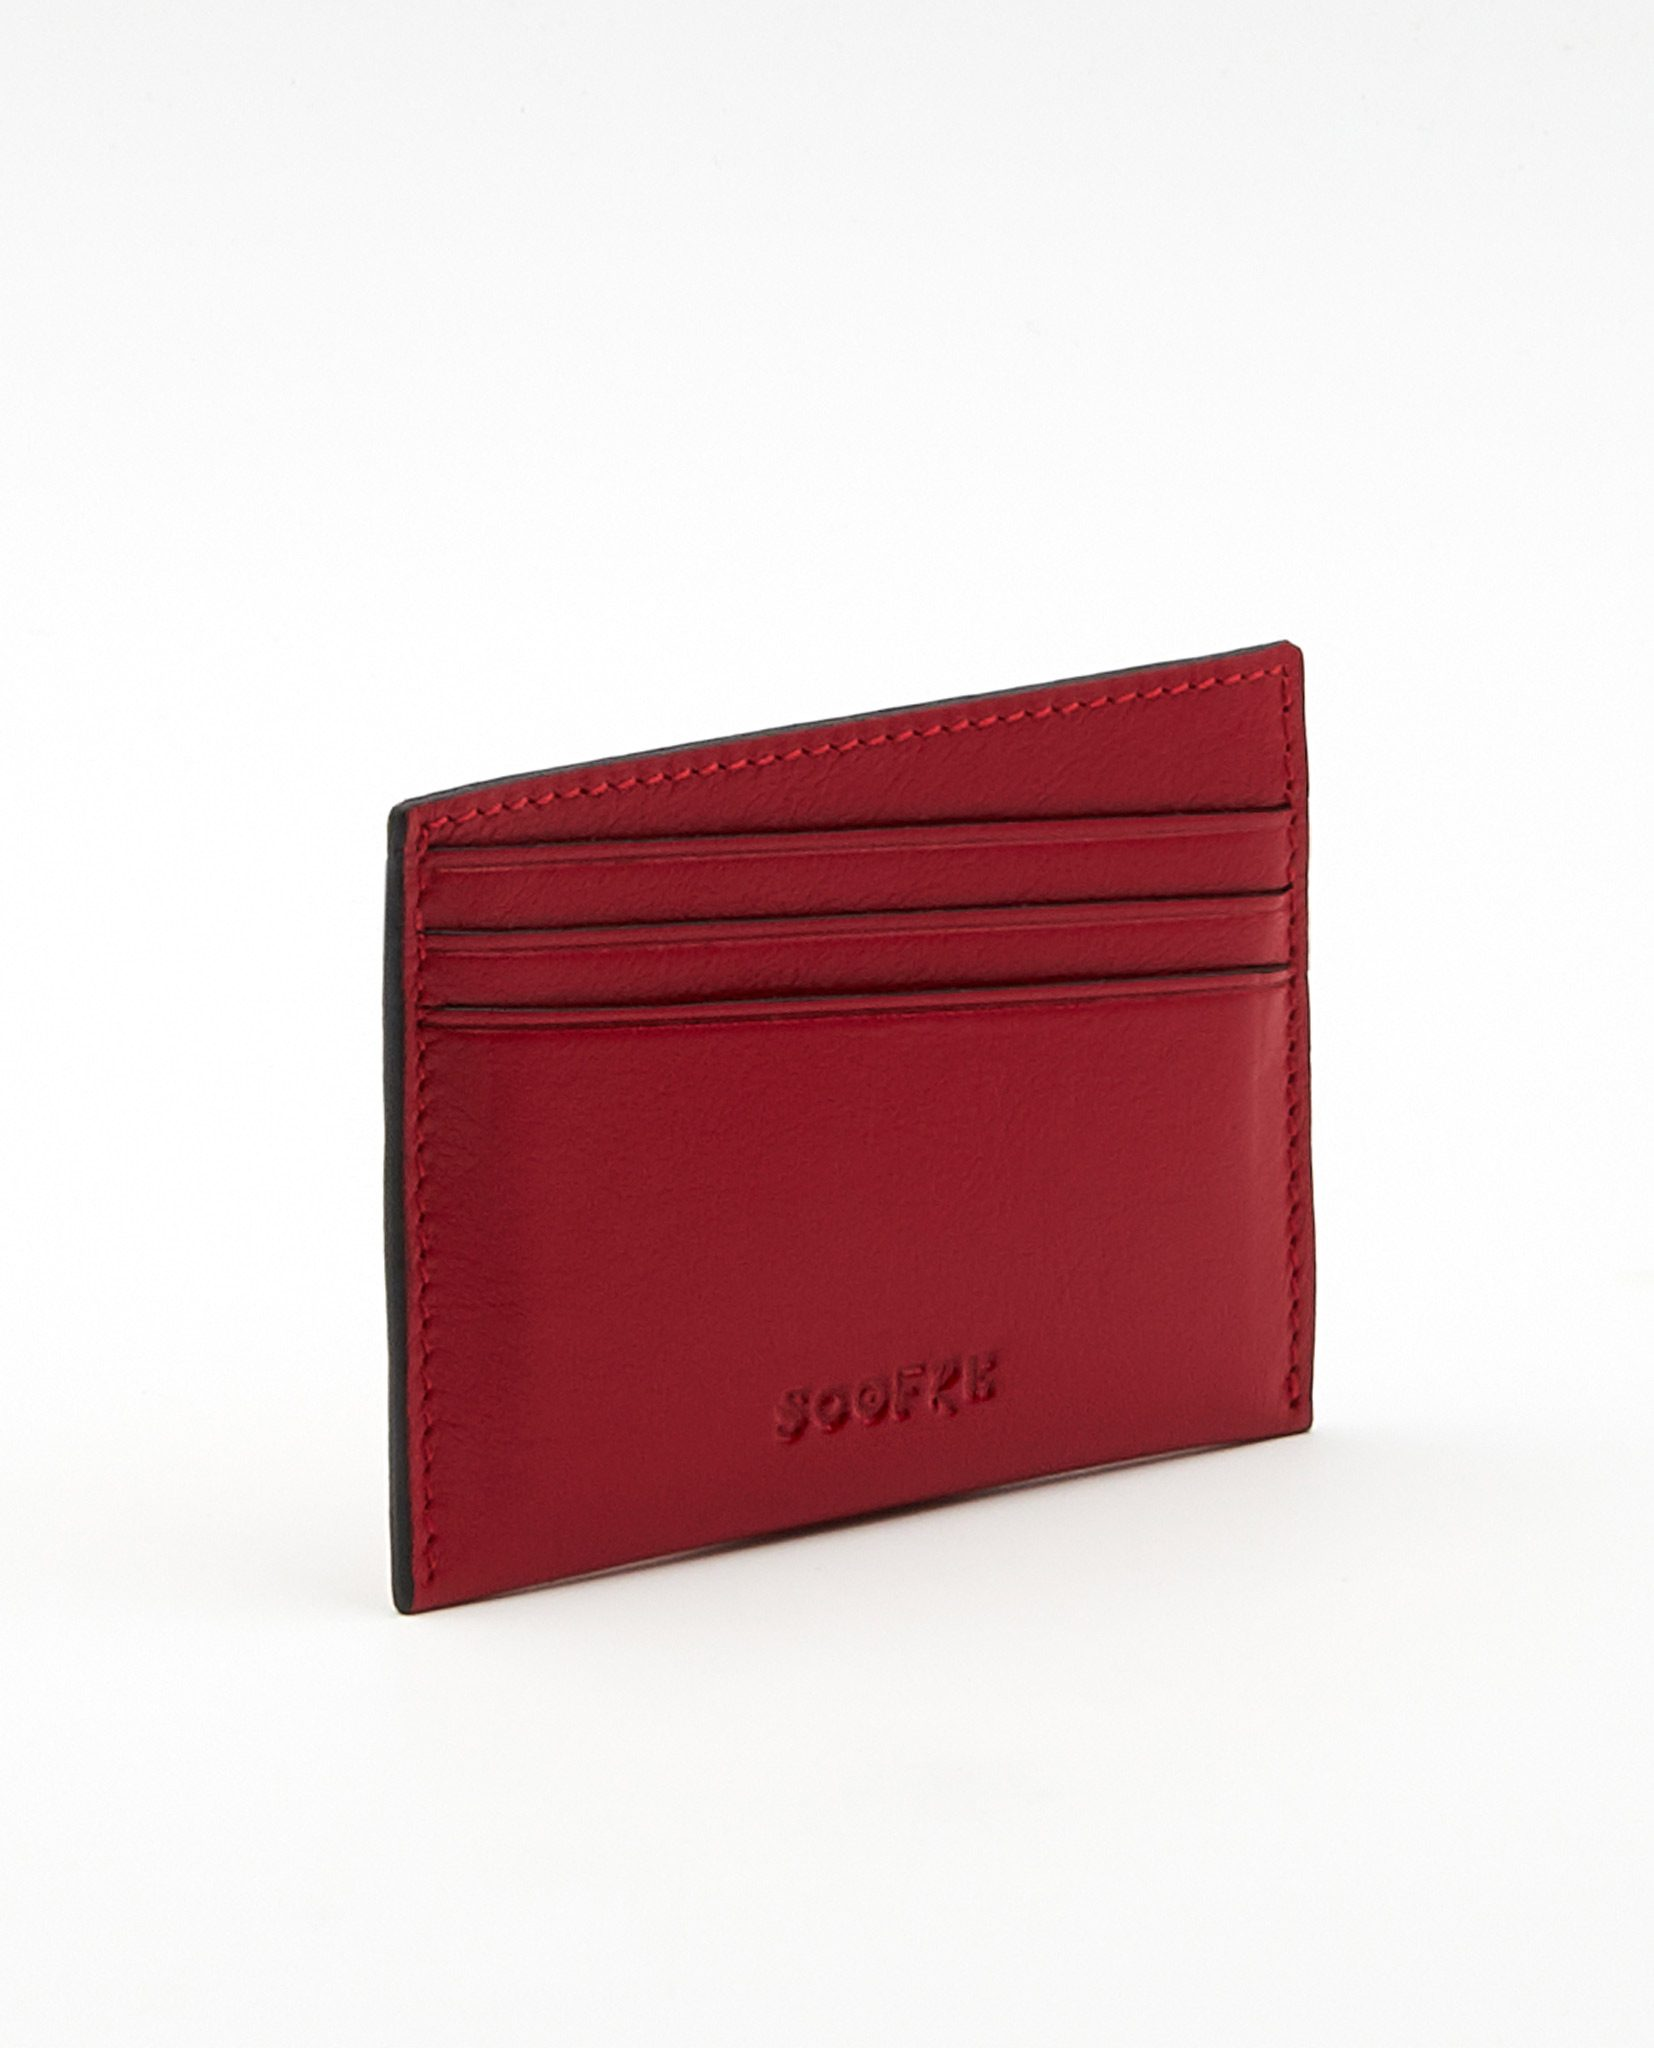 Soofre_Card-Holder_Red-Black_1